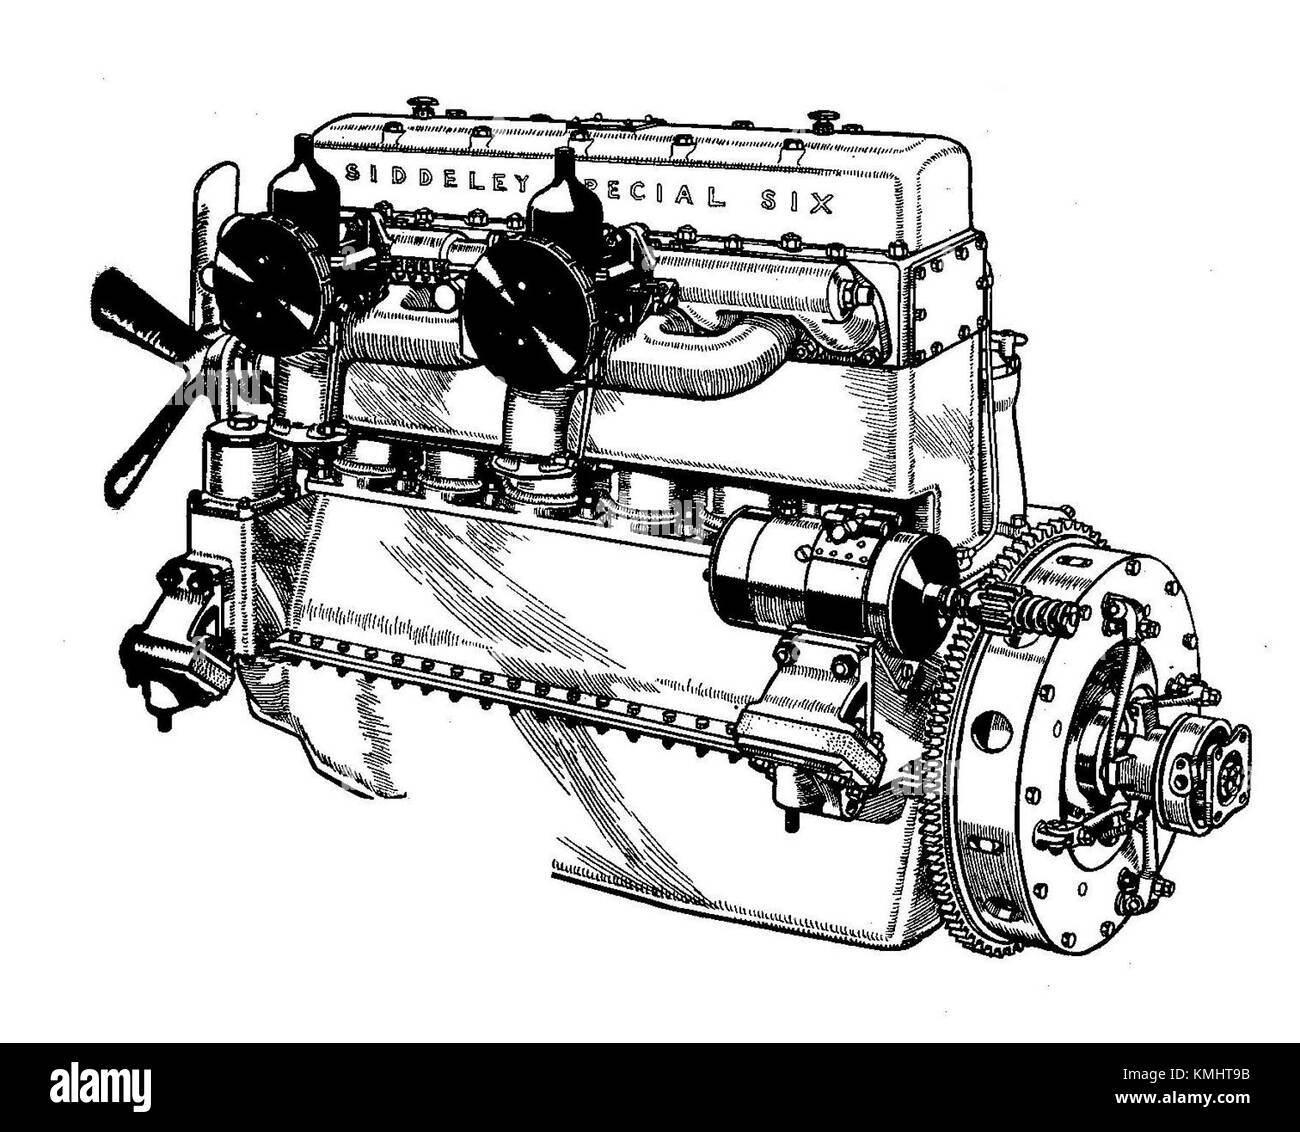 Armstrong-Siddeley Special Six engine, in Hiduminium alloy (Autocar  Handbook, 13th ed